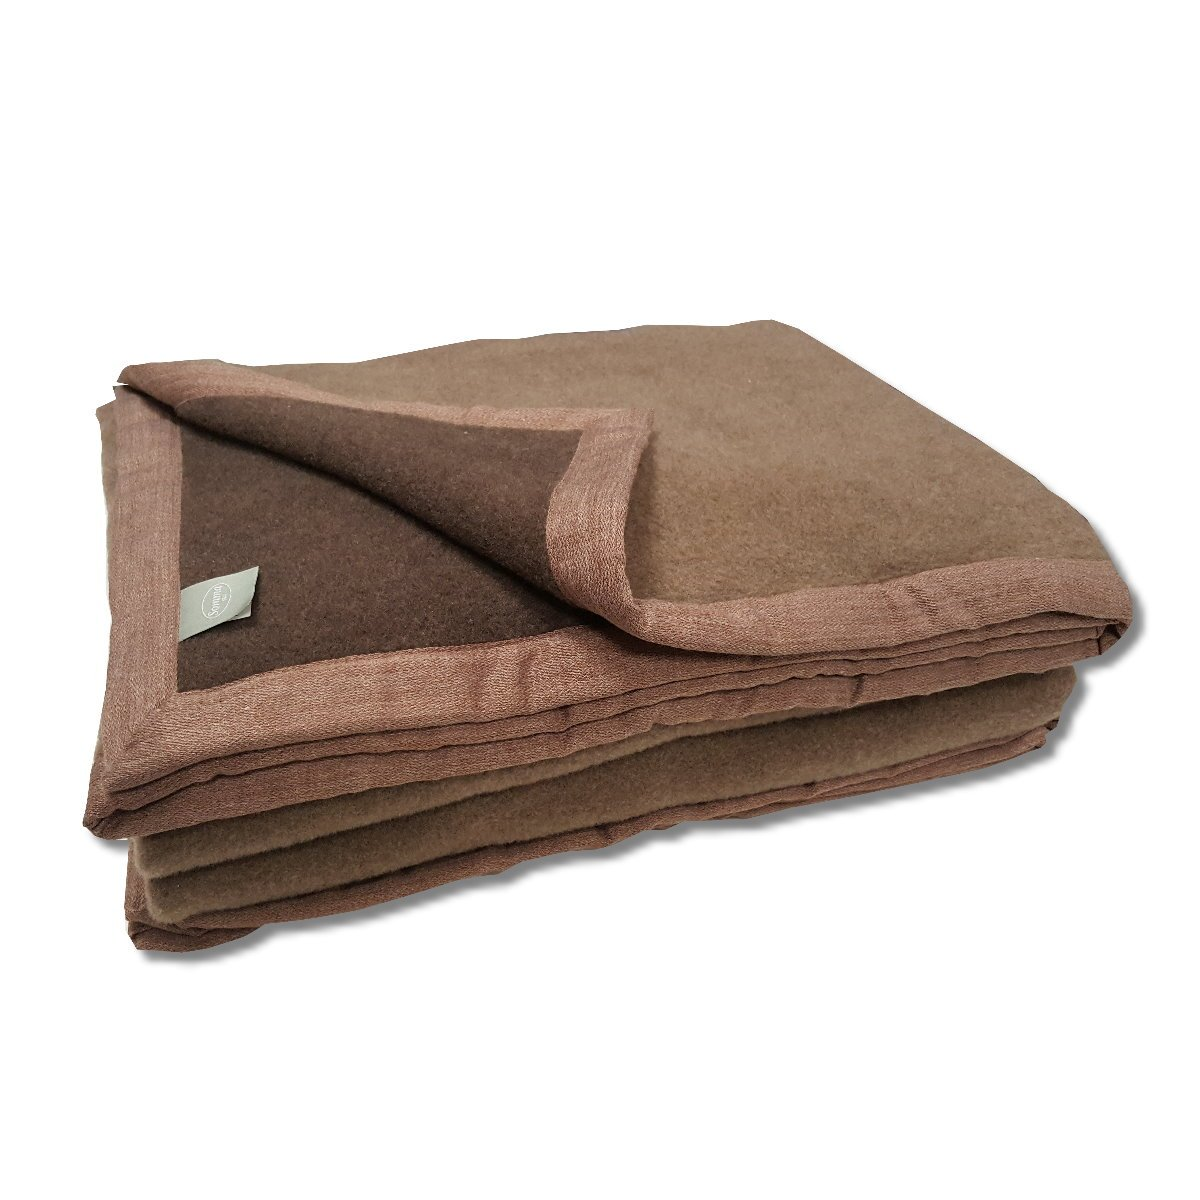 official photos 10d52 aff6c Panno coperta di lana terra brown Somma